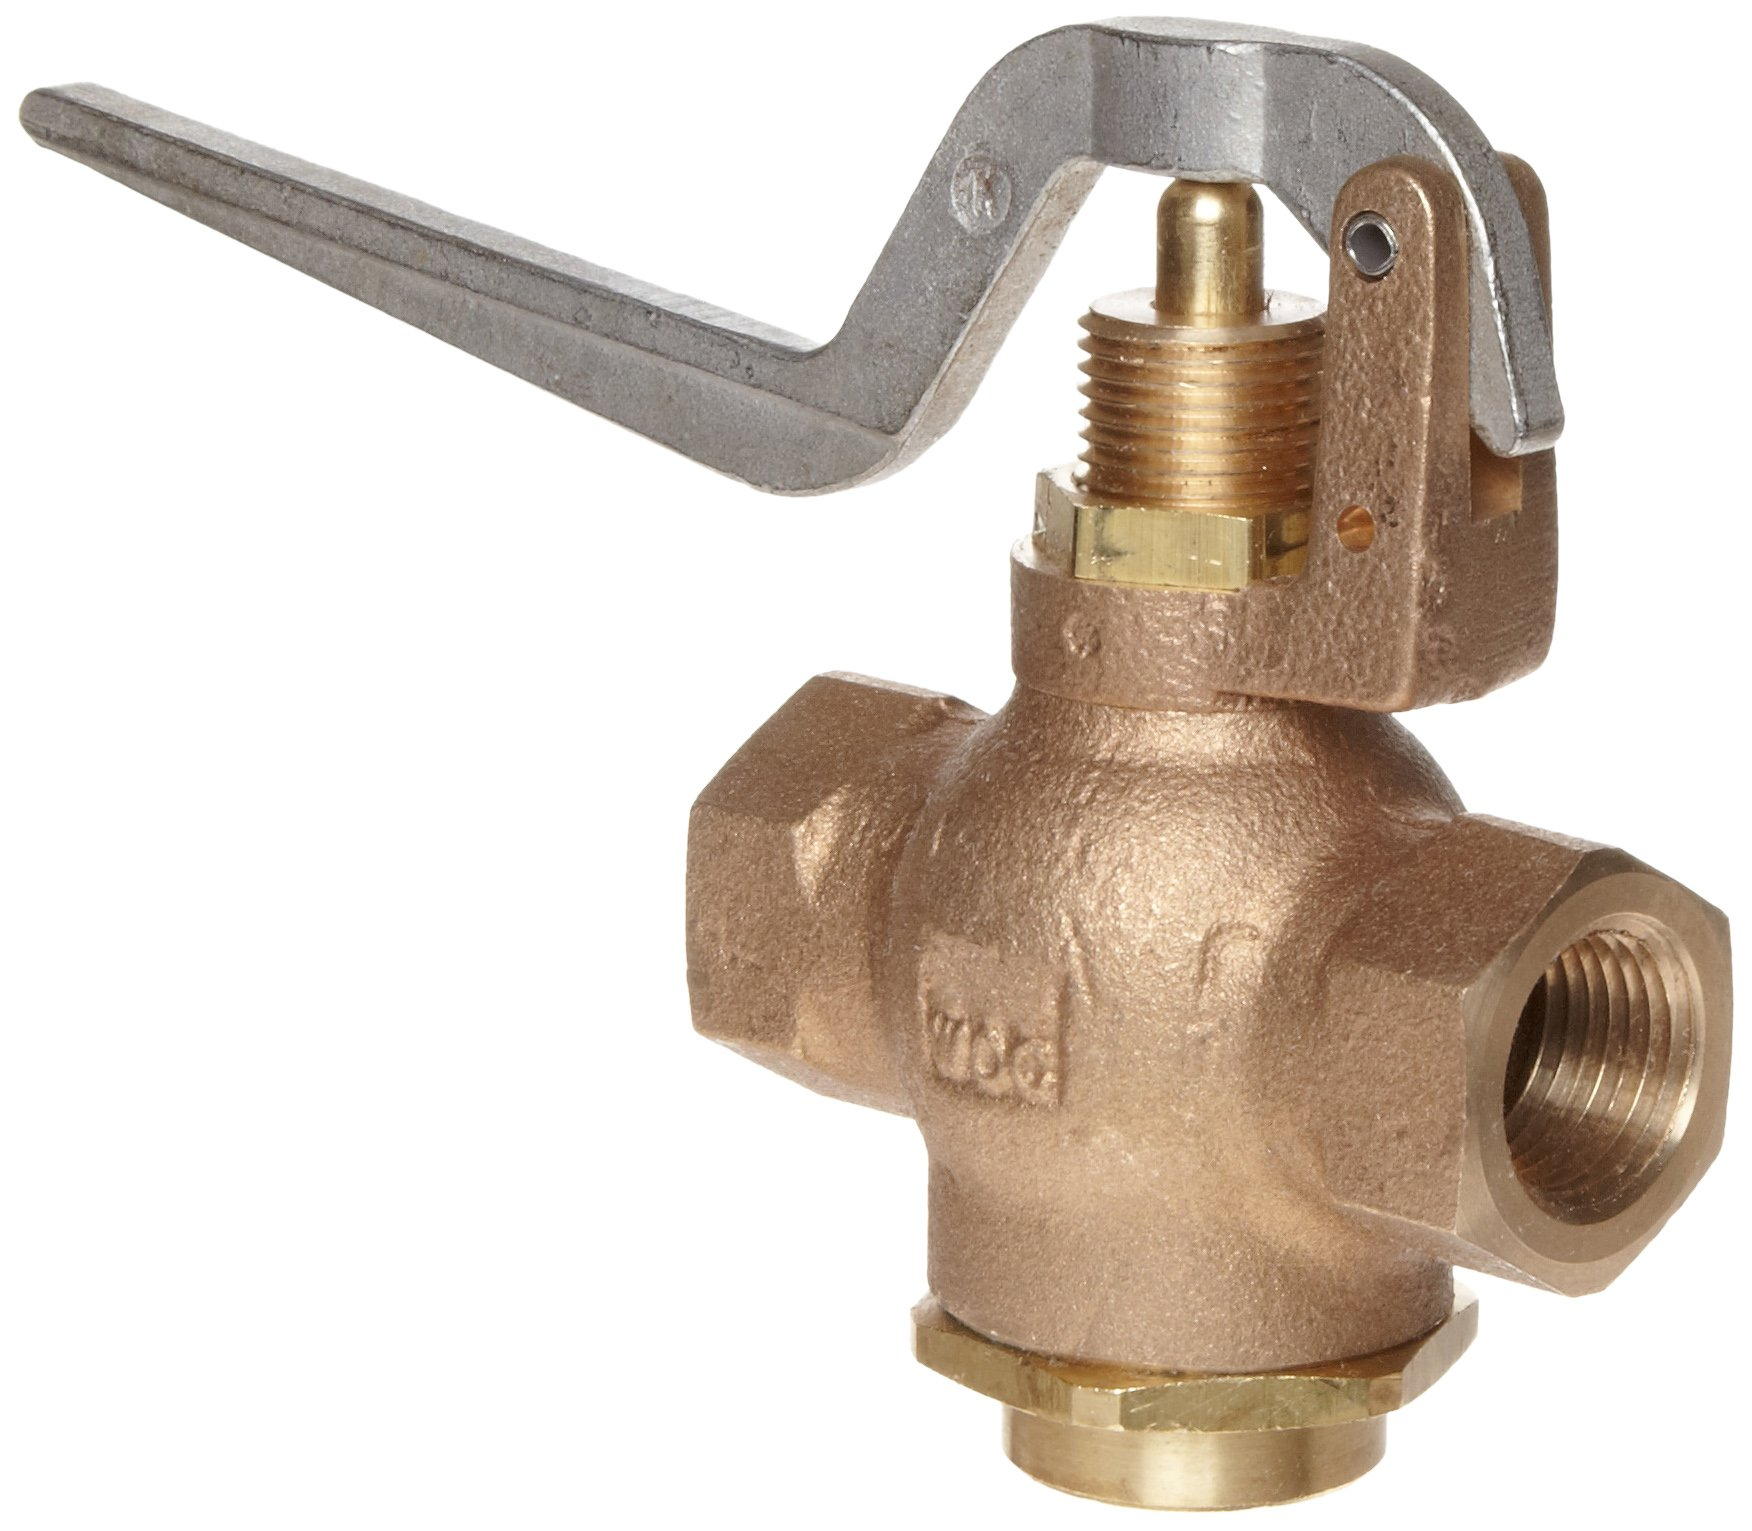 Kingston 305A Series Brass Quick Opening Flow Control Valve, Squeeze Lever, 1/2'' NPT Female by Kingston Valves